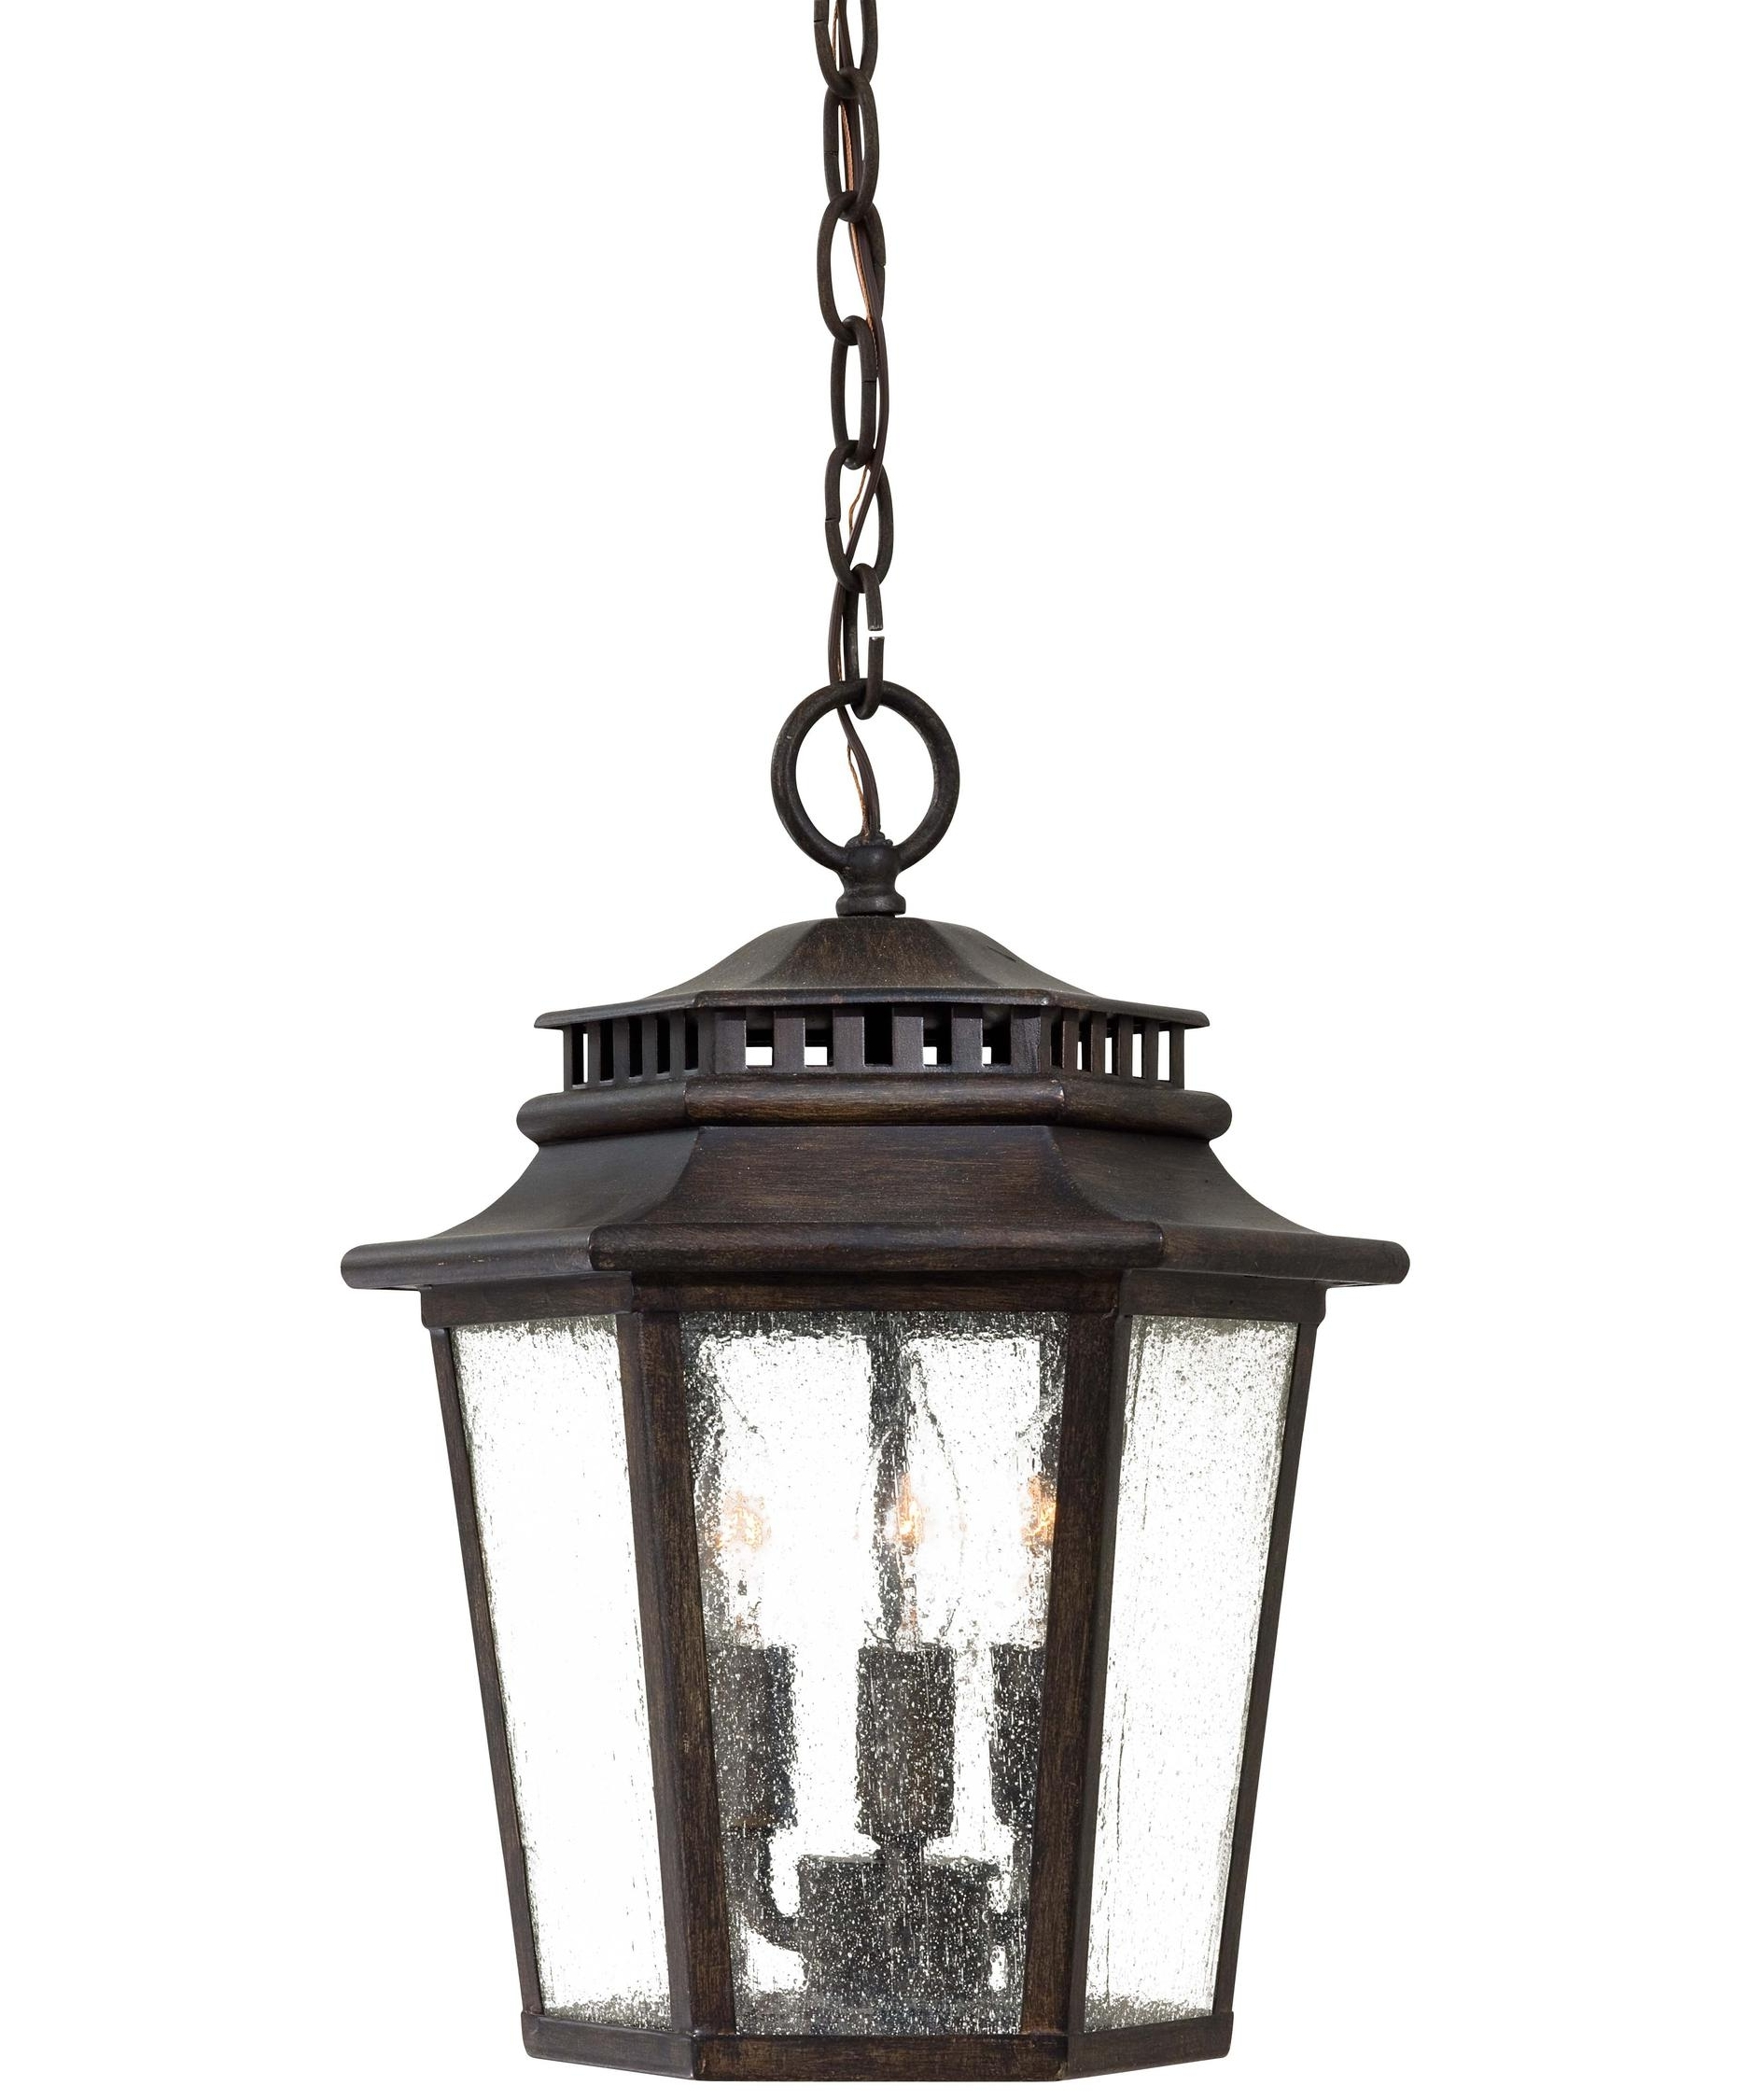 Solar Powered Outdoor Hanging Lanterns Intended For Best And Newest Large Hanging Outdoor Lights – Outdoor Designs (View 14 of 20)